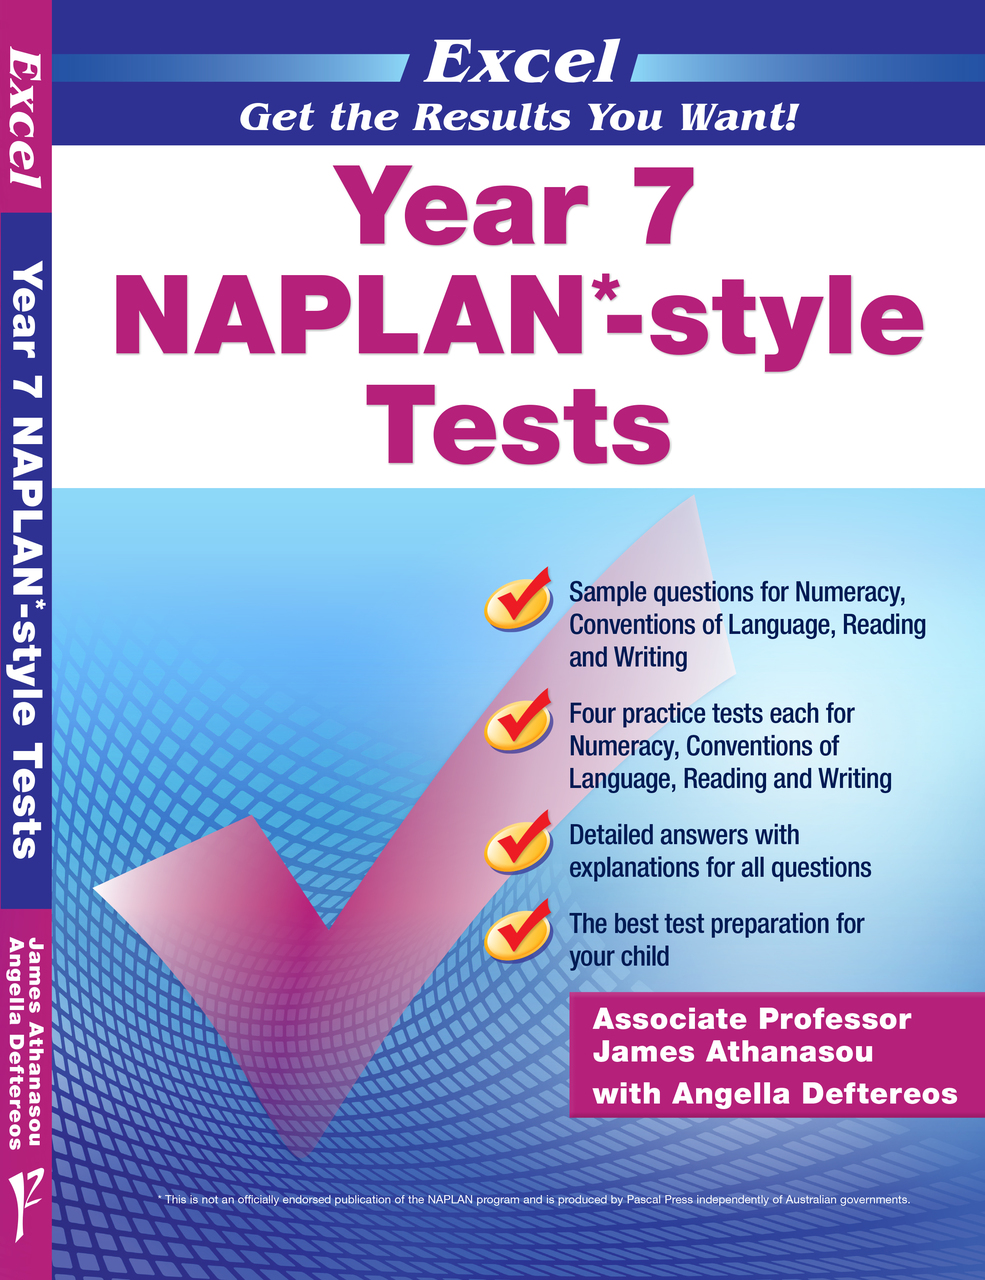 EXCEL - YEAR 7 NAPLAN*-STYLE TESTS